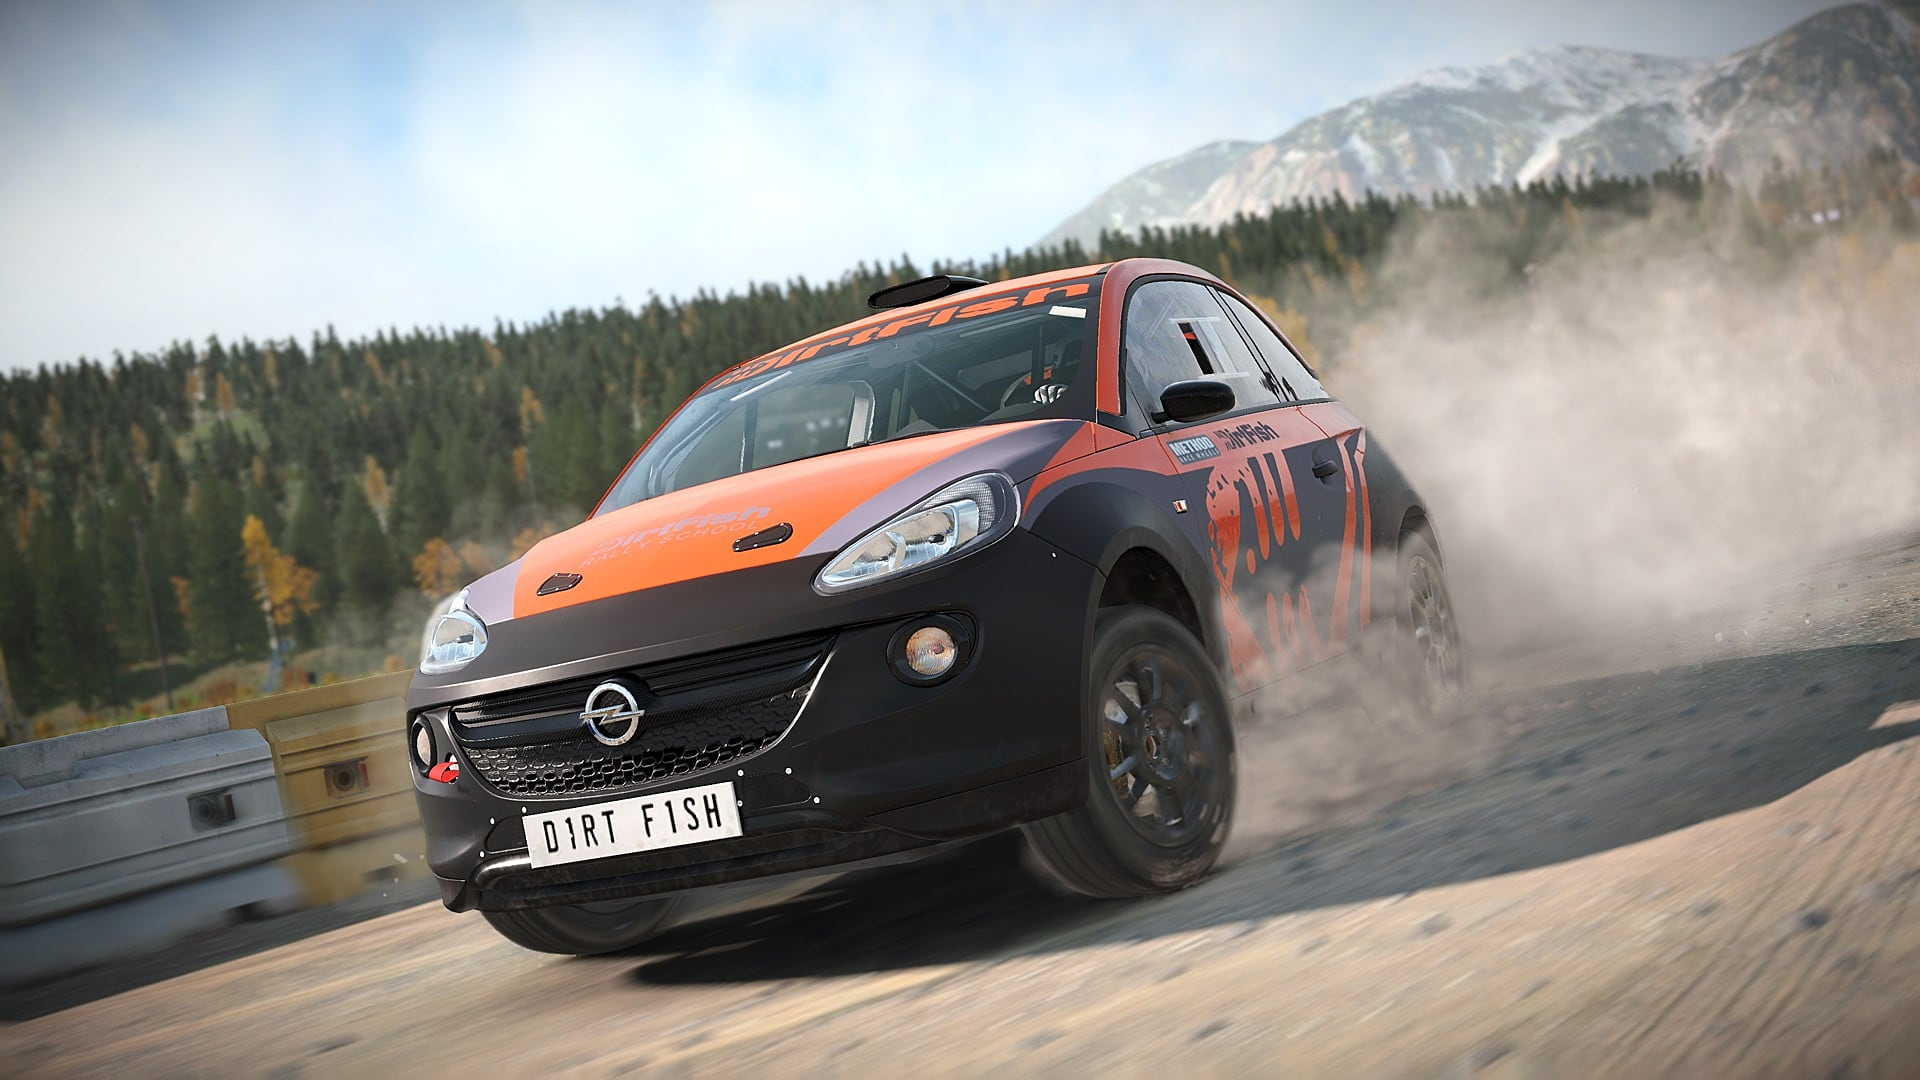 DiRT 4 Guide: Tips for Optimizing Wheel Settings and Force